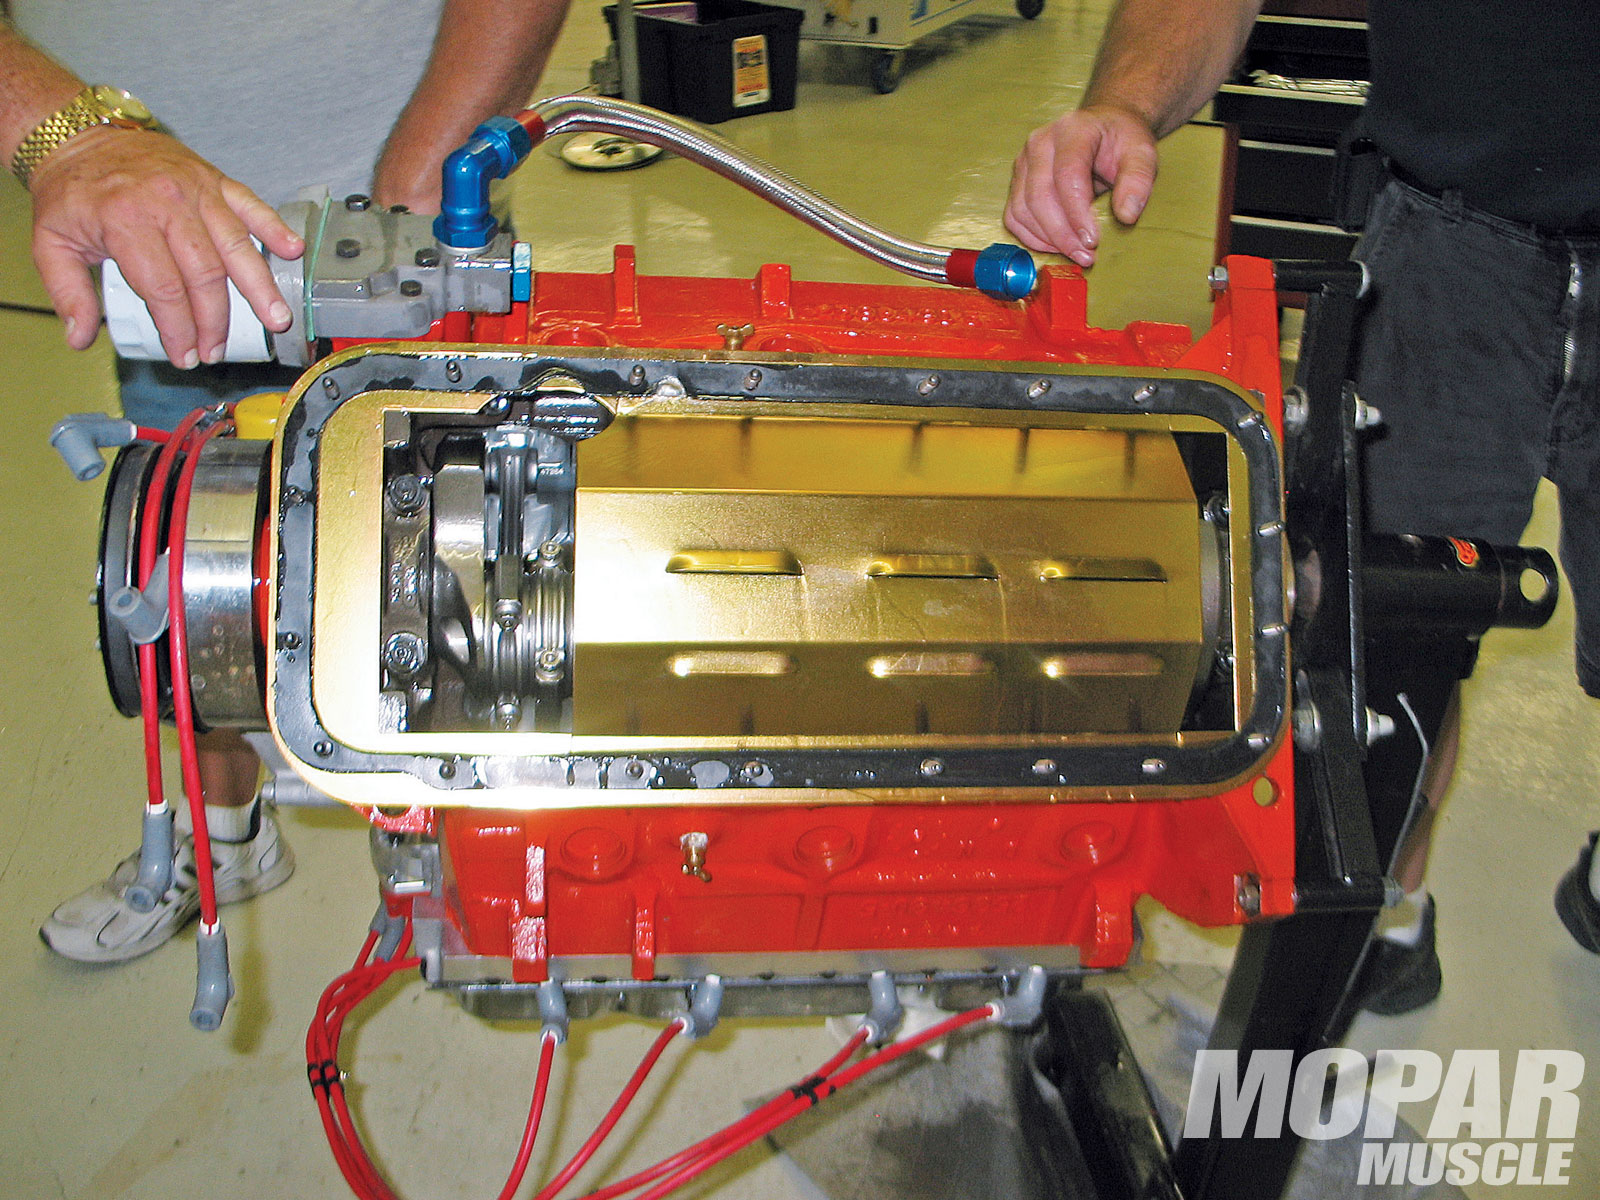 Choosing The Best Oils For Your Mopar Engine.